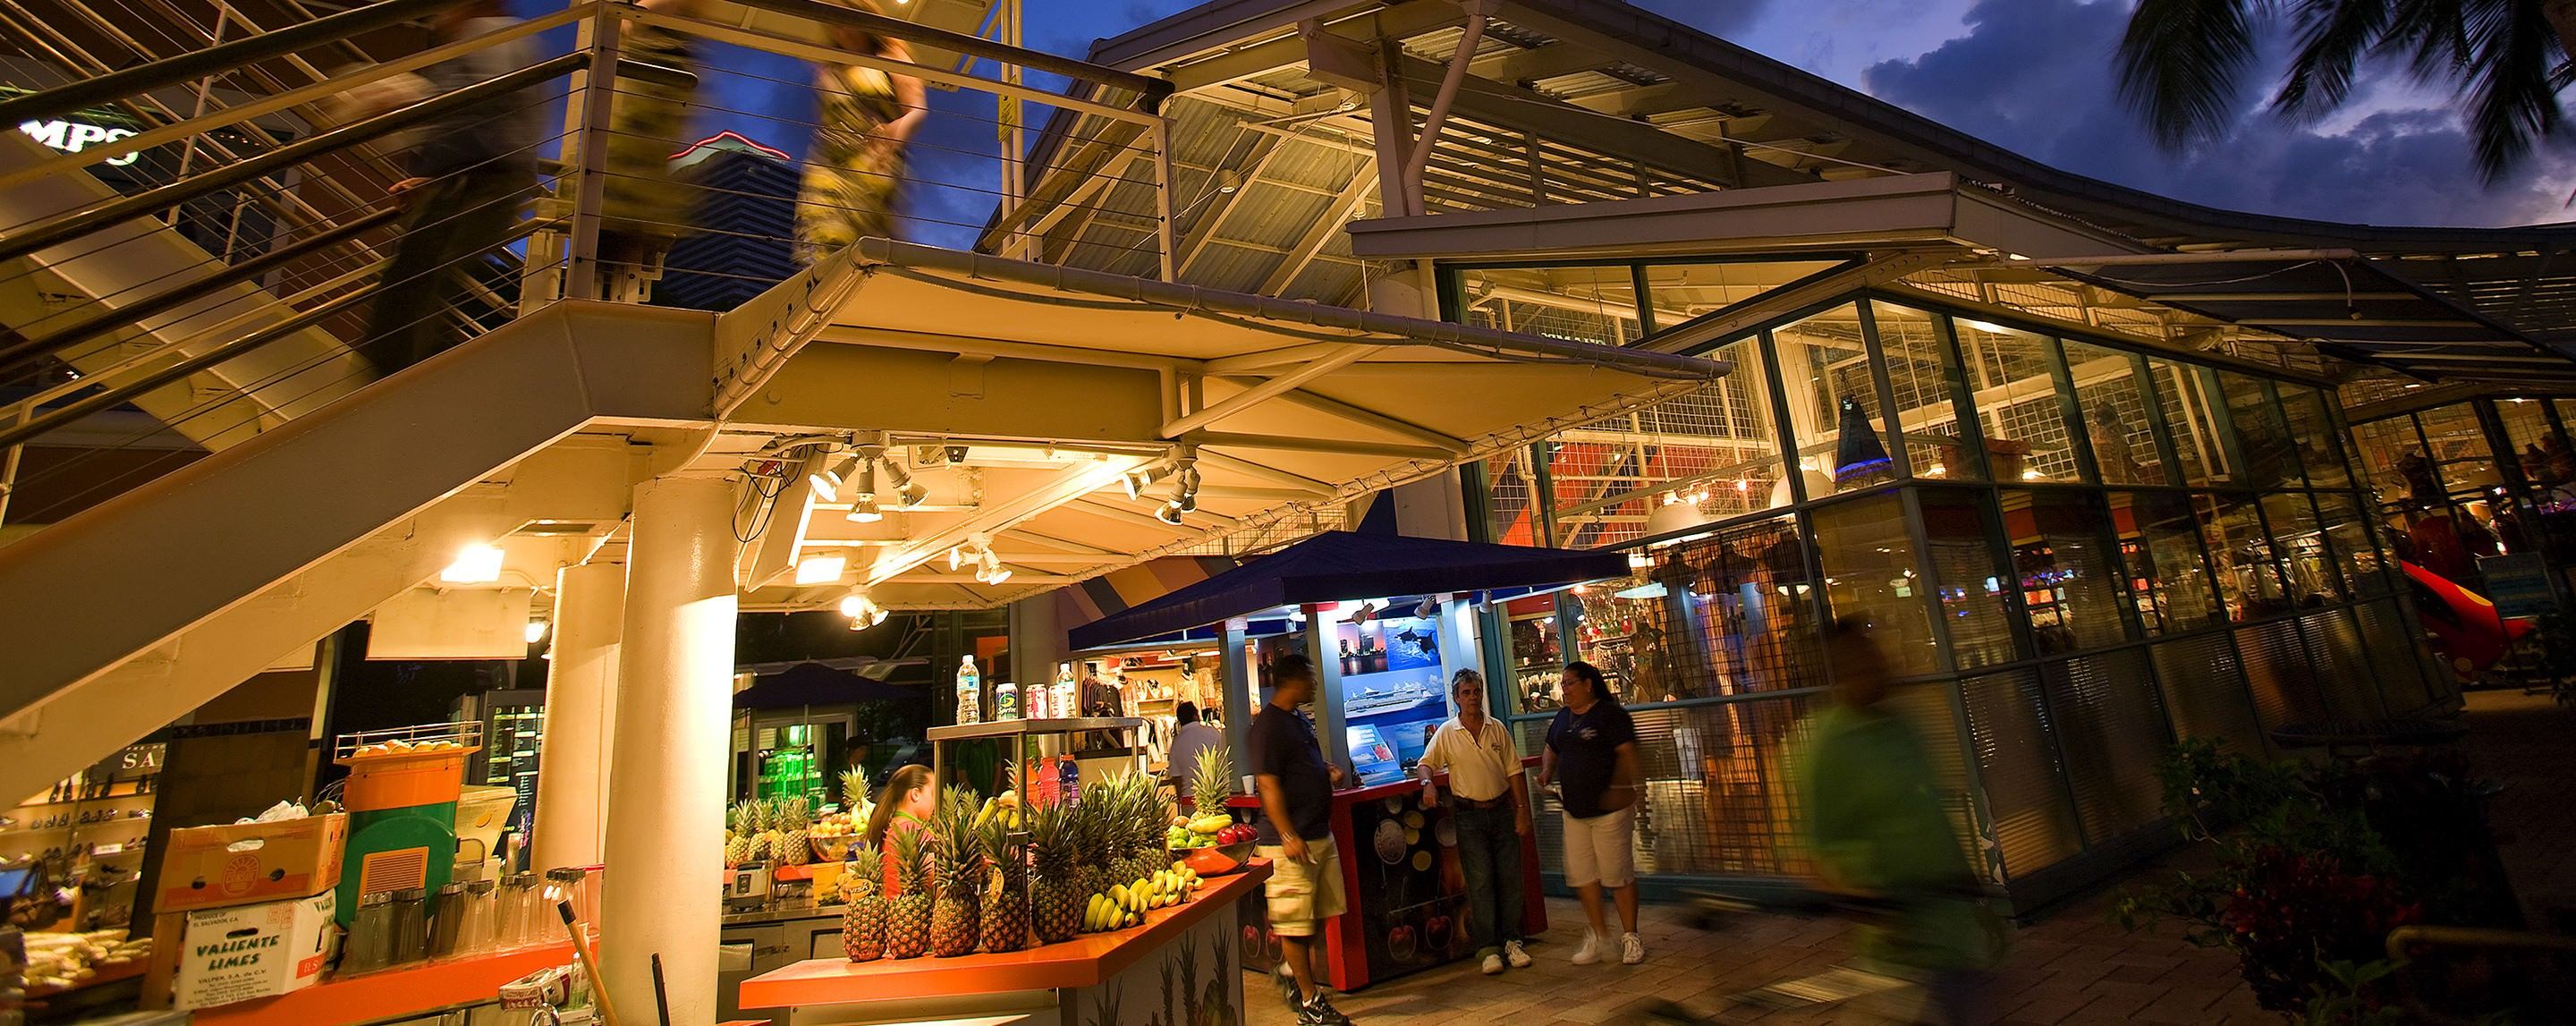 At night, the outside common area at Bayside Marketplace is busy with shoppers and vendors.